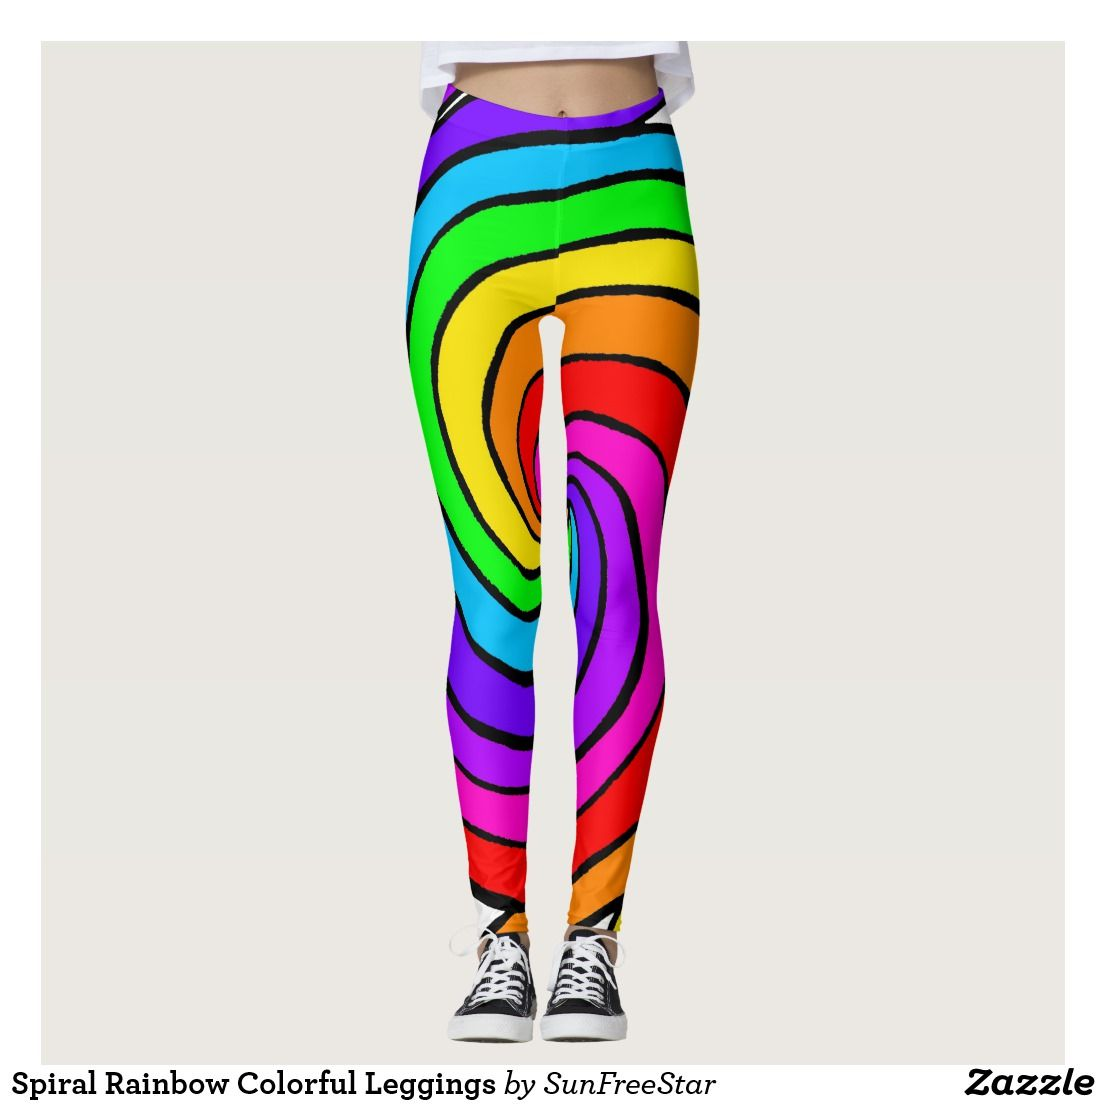 493f26cb4197d Do you want to become a Rainbow and spread joy everywhere you go? Try these Spiral  Rainbow Colorful Leggings.